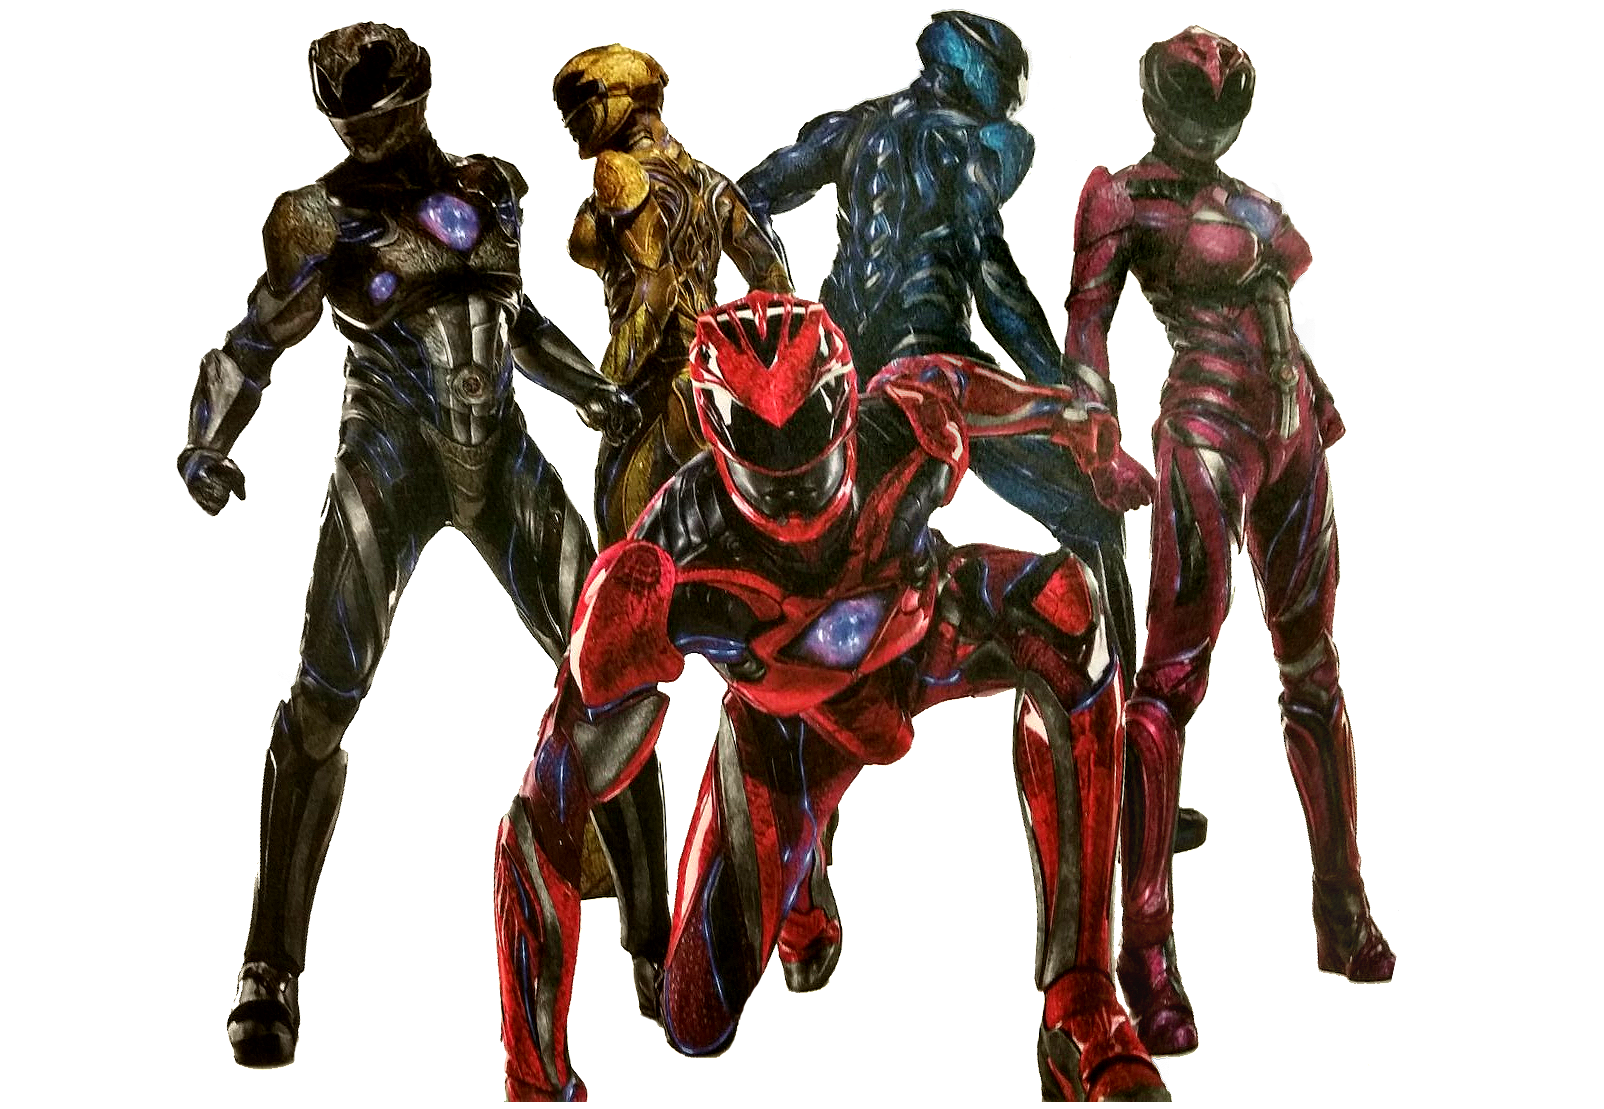 Power Rangers Png Hd Transparent Power Rangers Hd Png Images